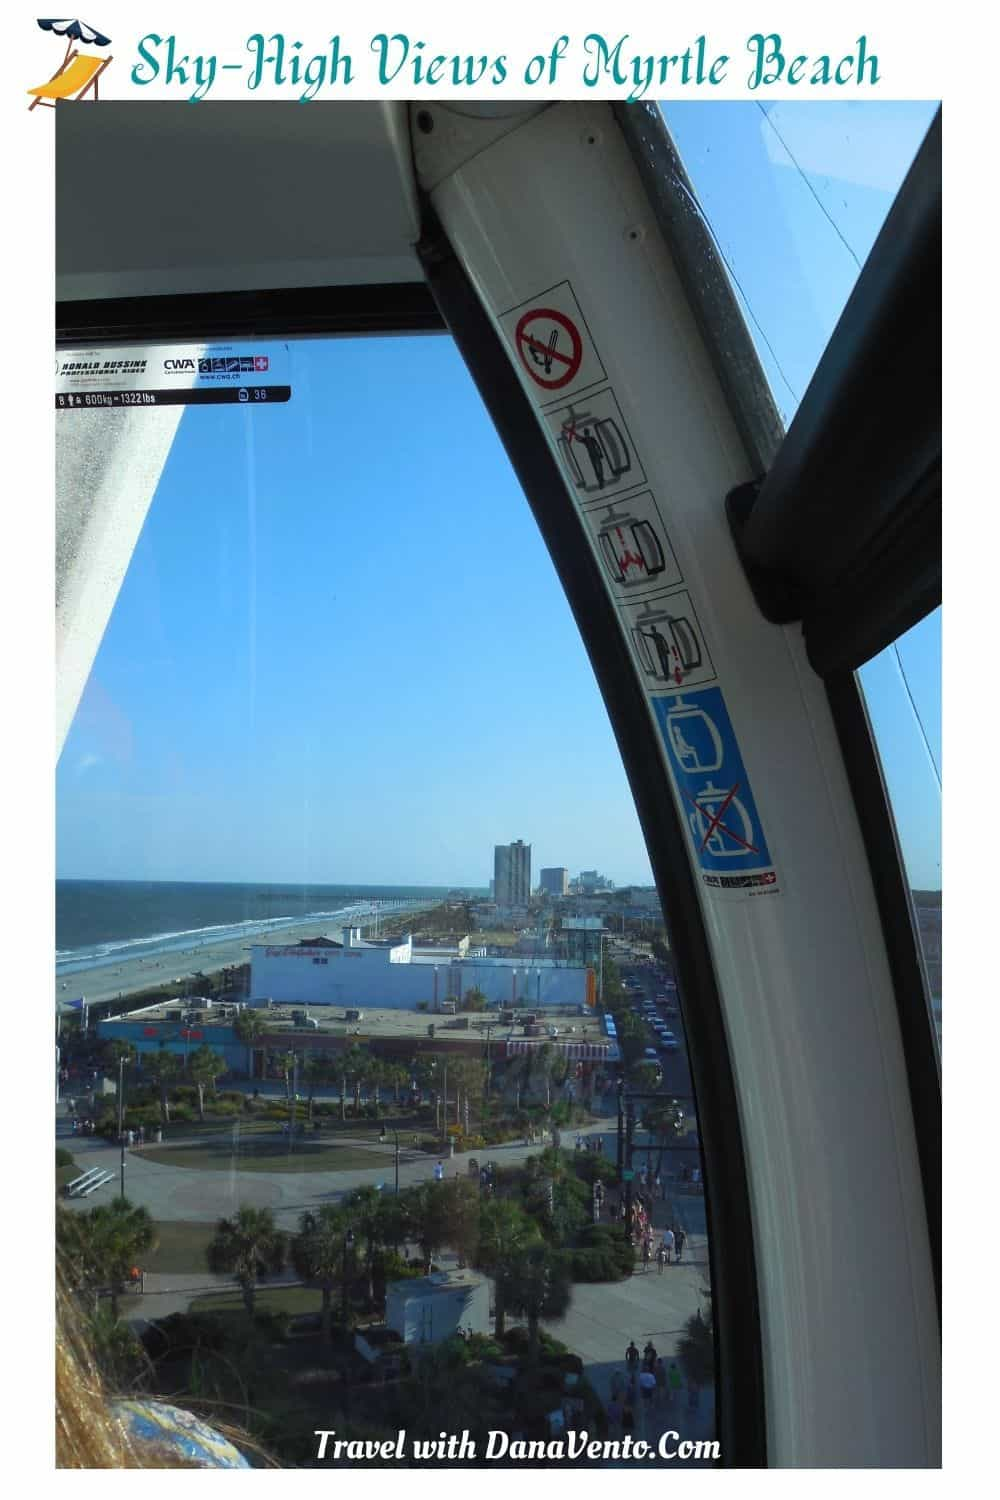 Sky High Views of Myrtle Beach Inside Gondola